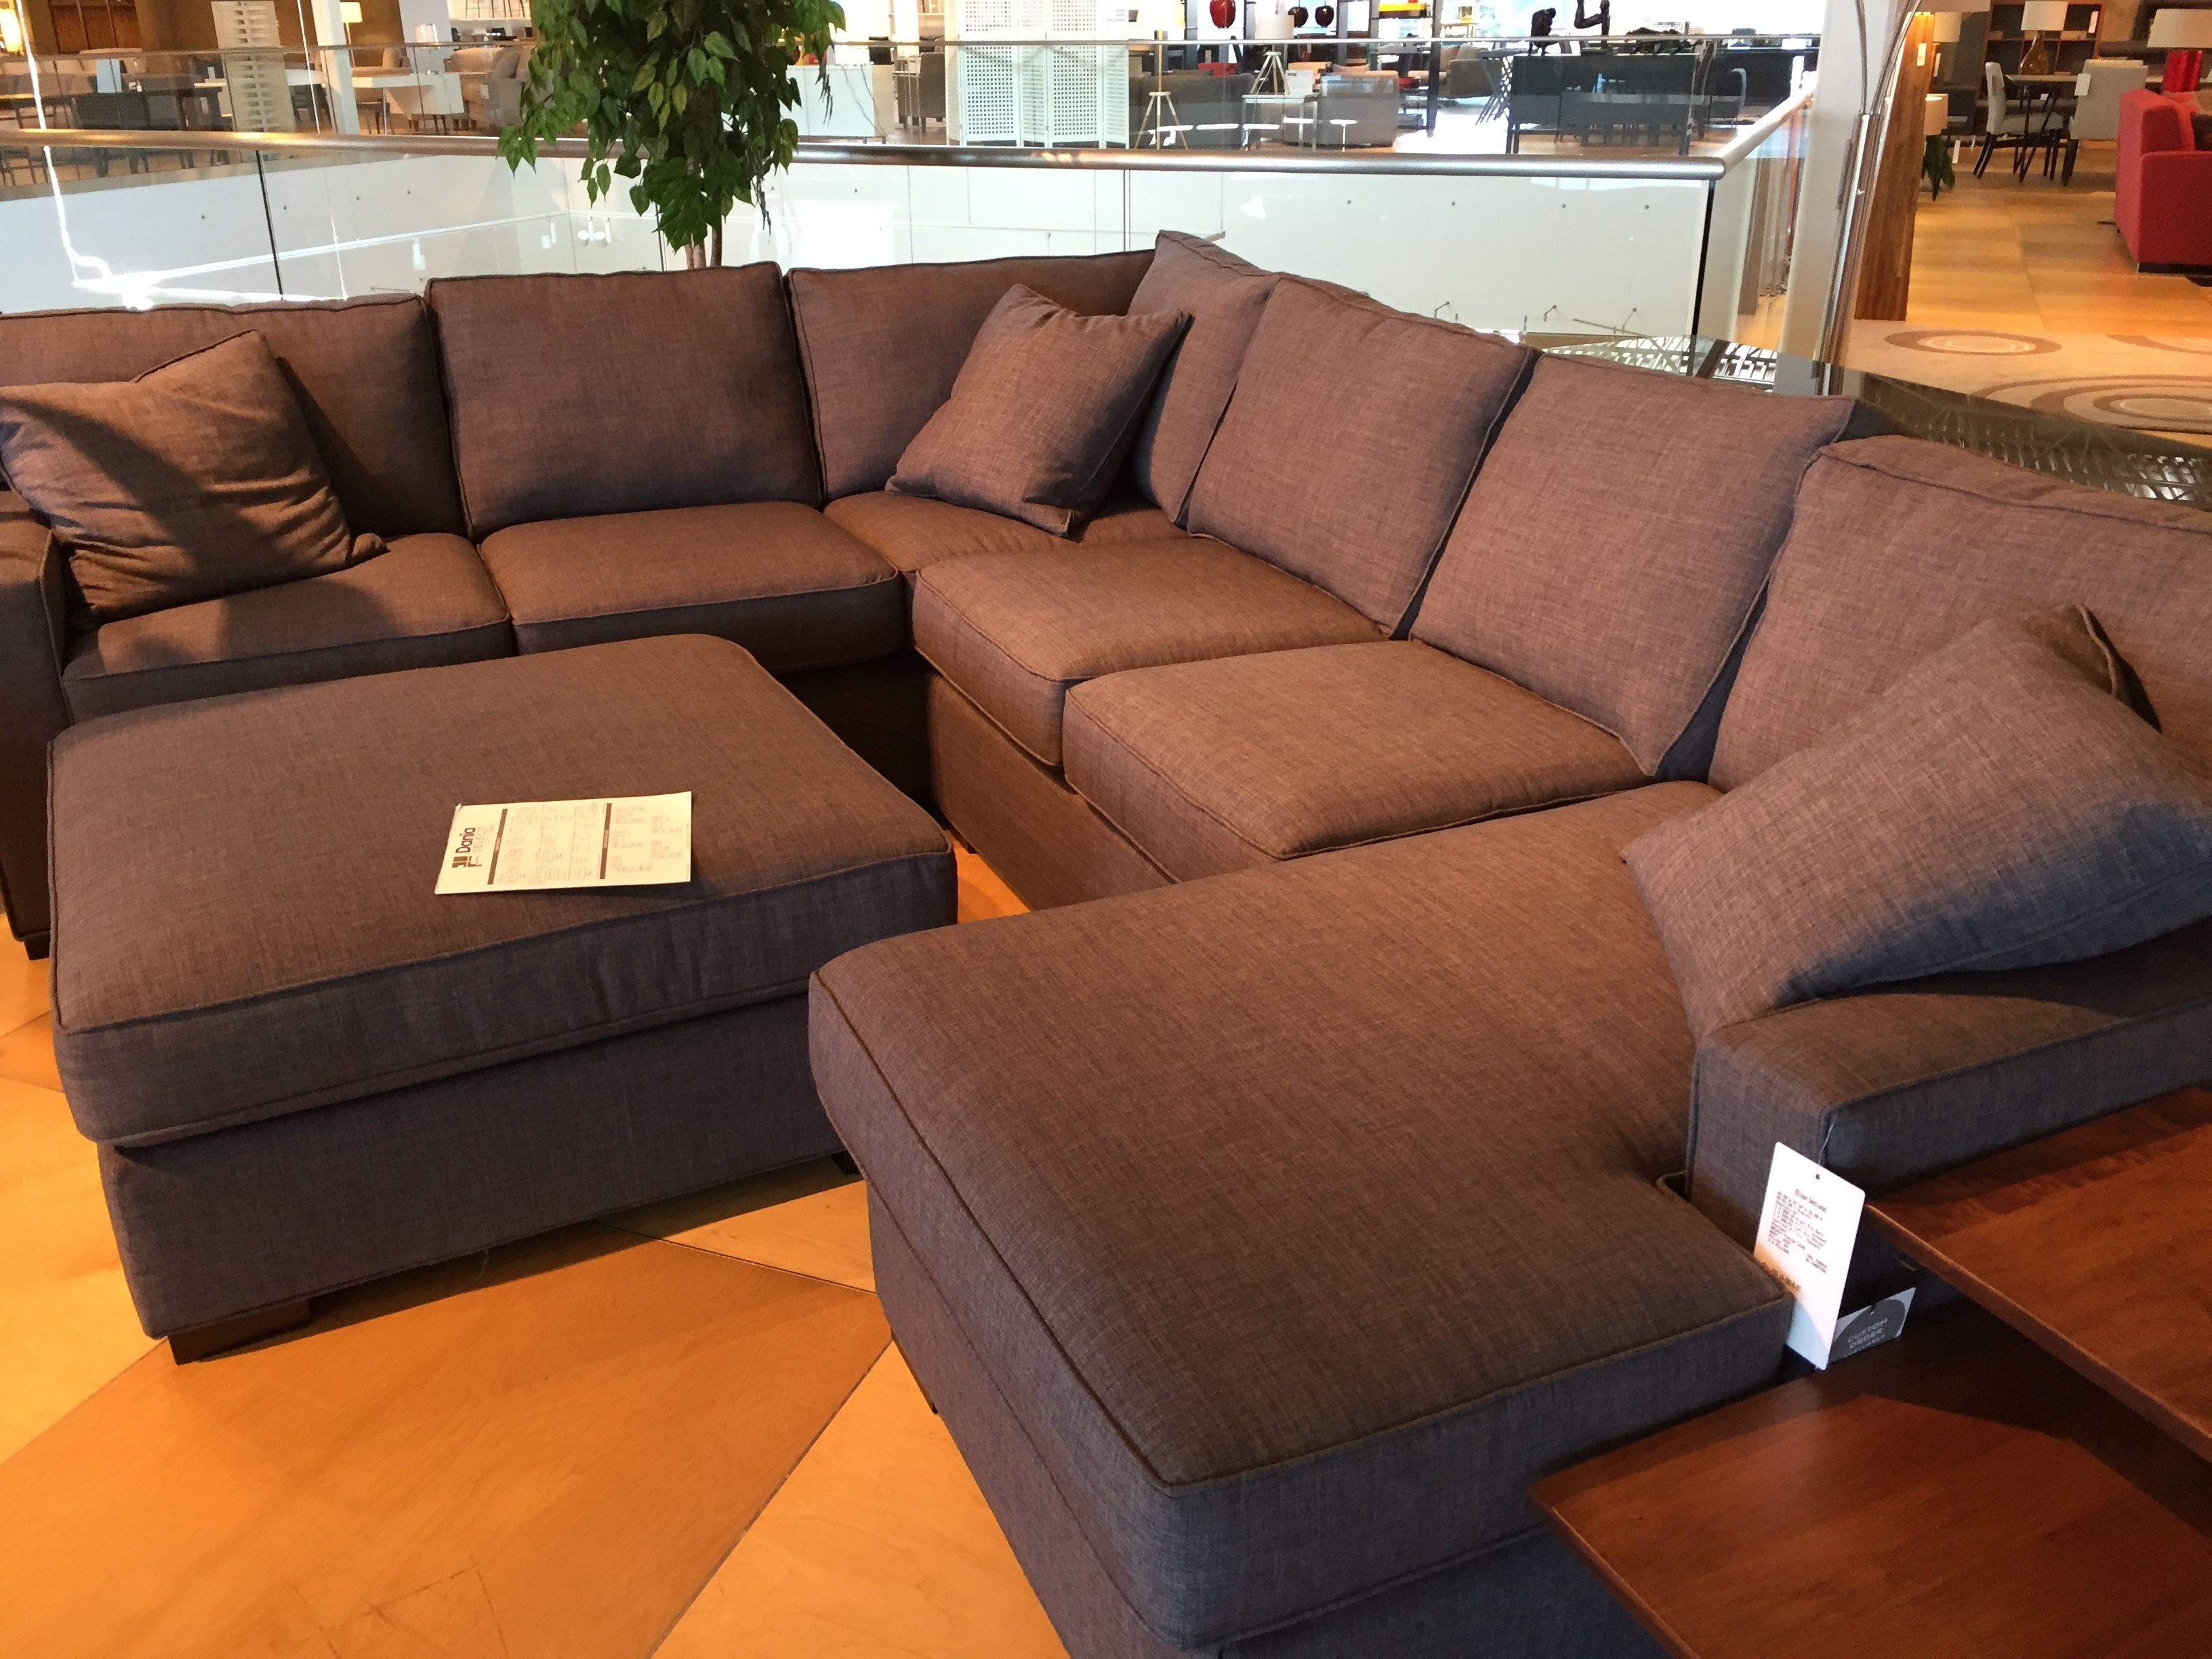 Swell Glisan At Dania Leather Couch Sectional Cheap Couch Sofa Cjindustries Chair Design For Home Cjindustriesco